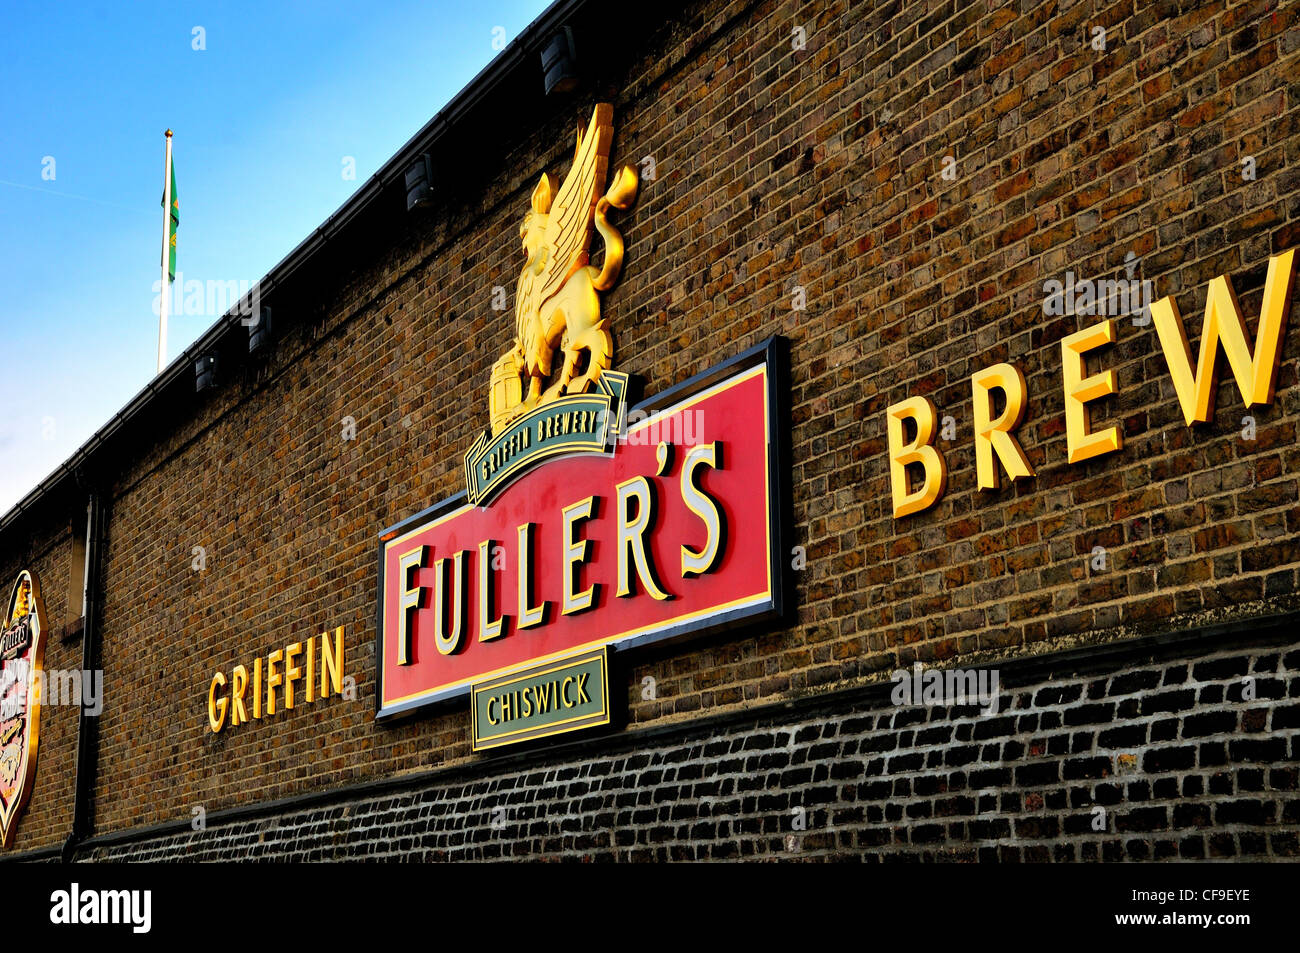 Logo of Fullers brewery on brick wall,Chiswick, London - Stock Image